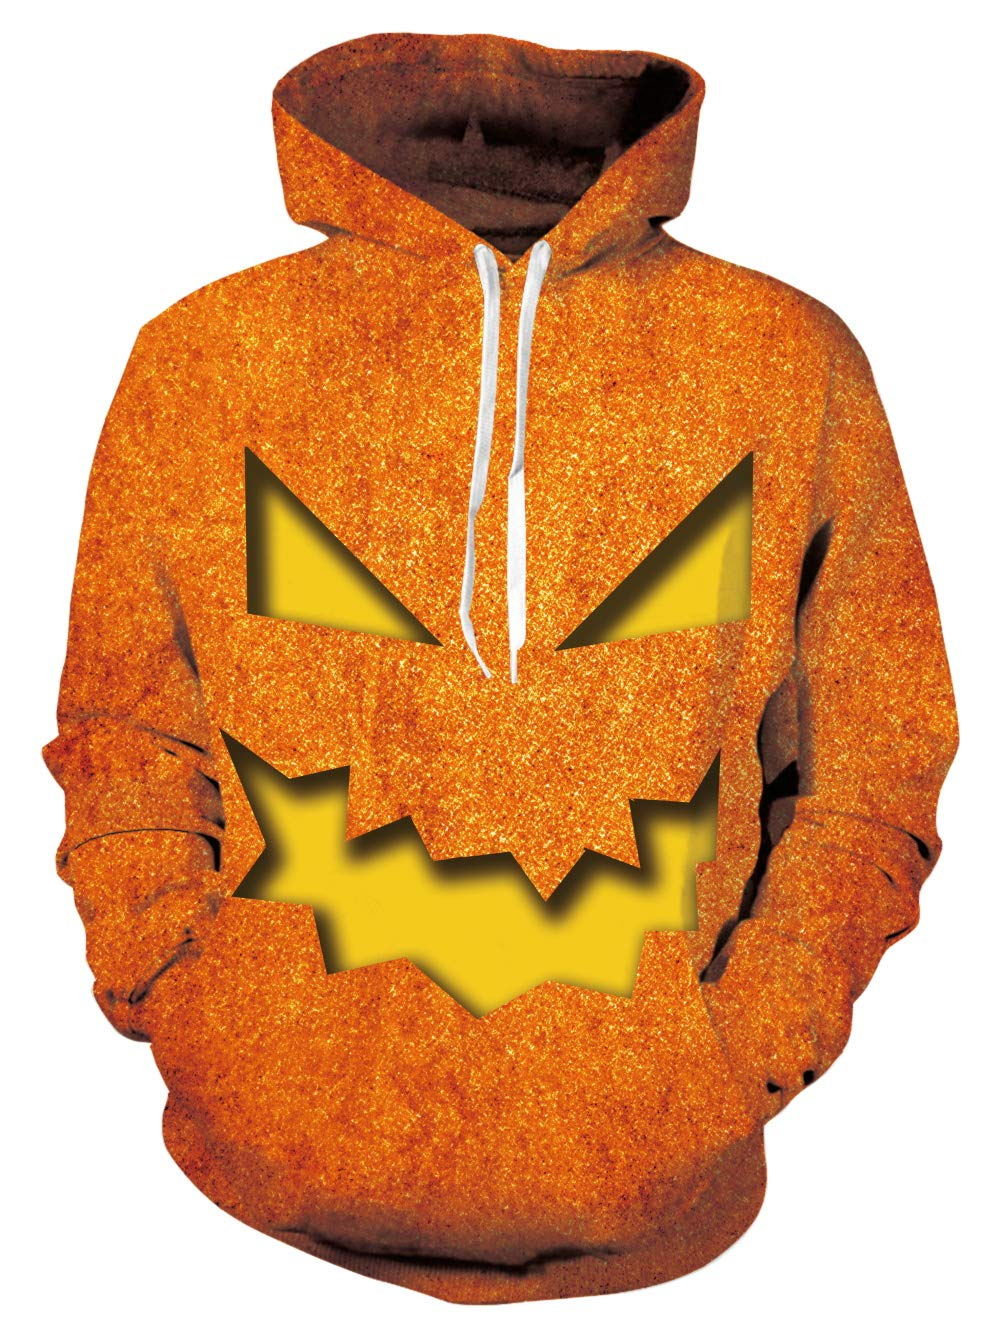 UNICOMIDEA Unisex Realistic 3D Graphic Hoodies Pullover Cool Stylish Printed Sweatshirts Hooded with Big Pockets S-3XL